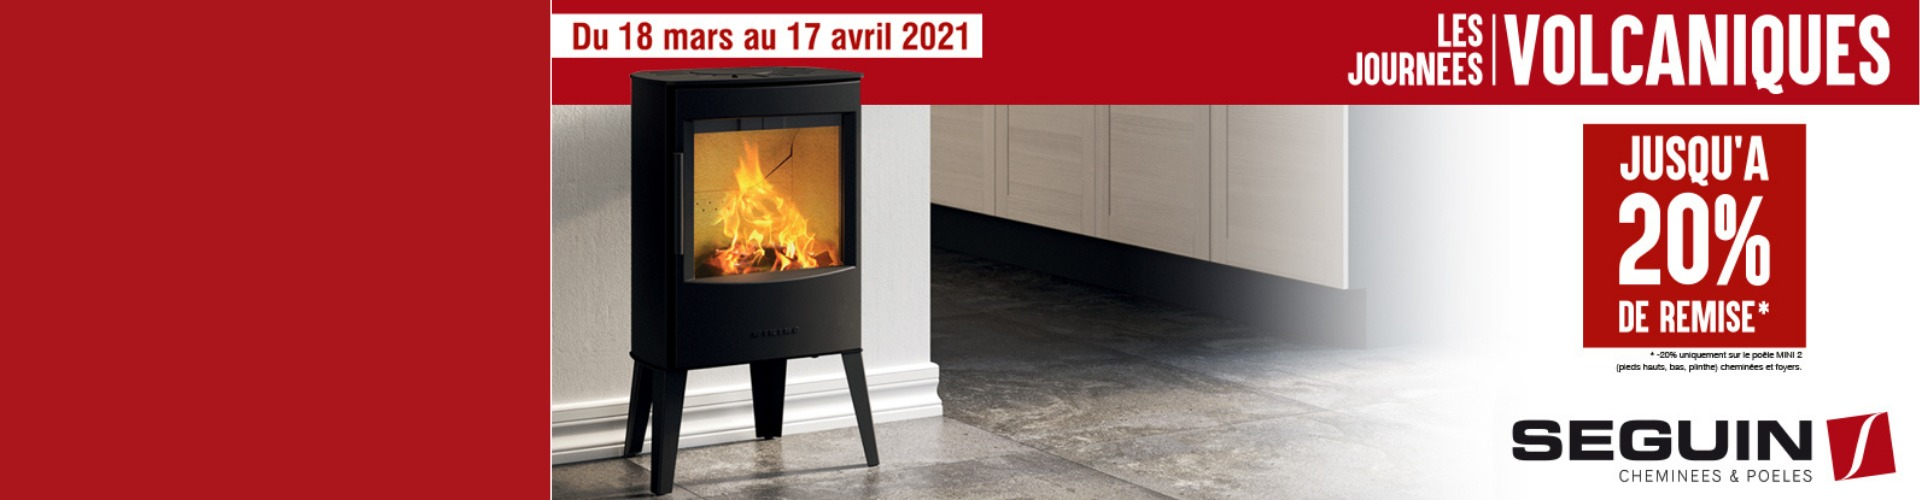 journees-volcaniques-2021-seguin-91-promotions-cheminees-foyers